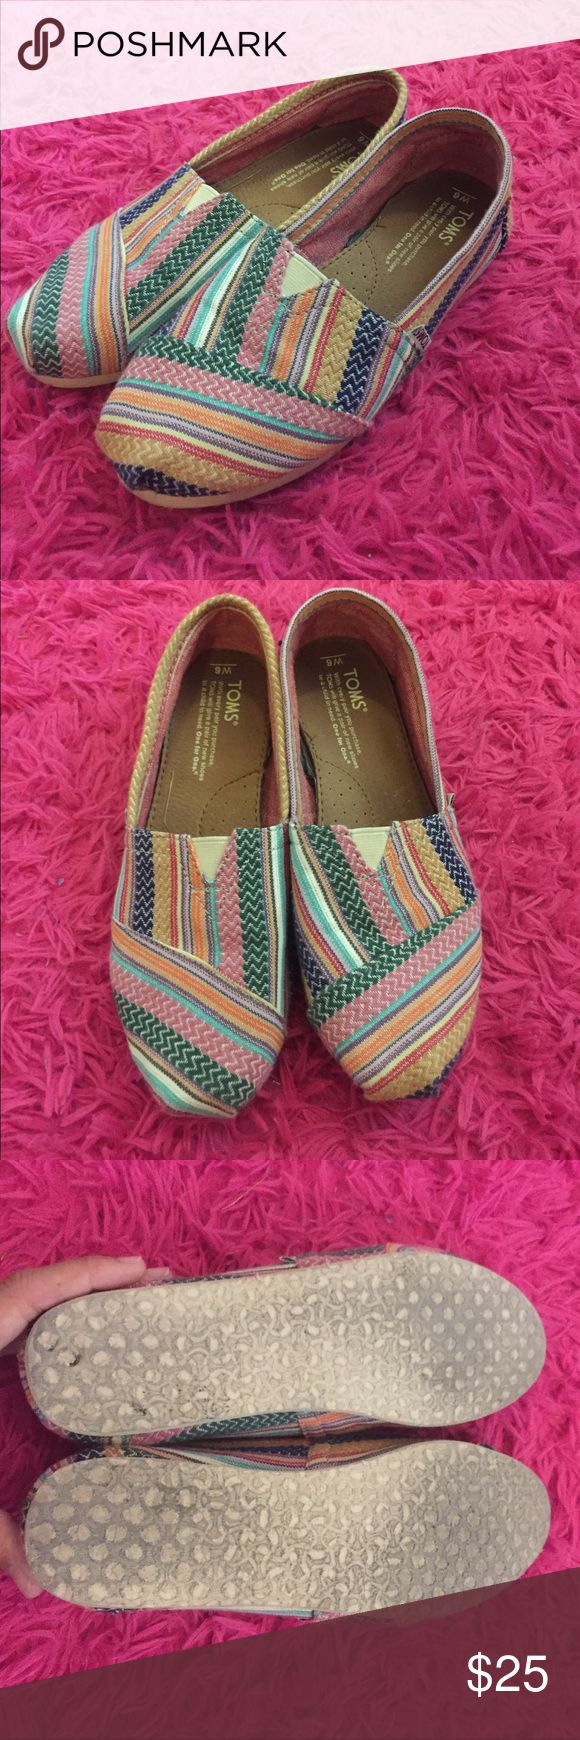 Colorful toms Only worn once super cute and colorful with almost no signs of wear! Make offers and bundle for discounts 💕 Toms Shoes